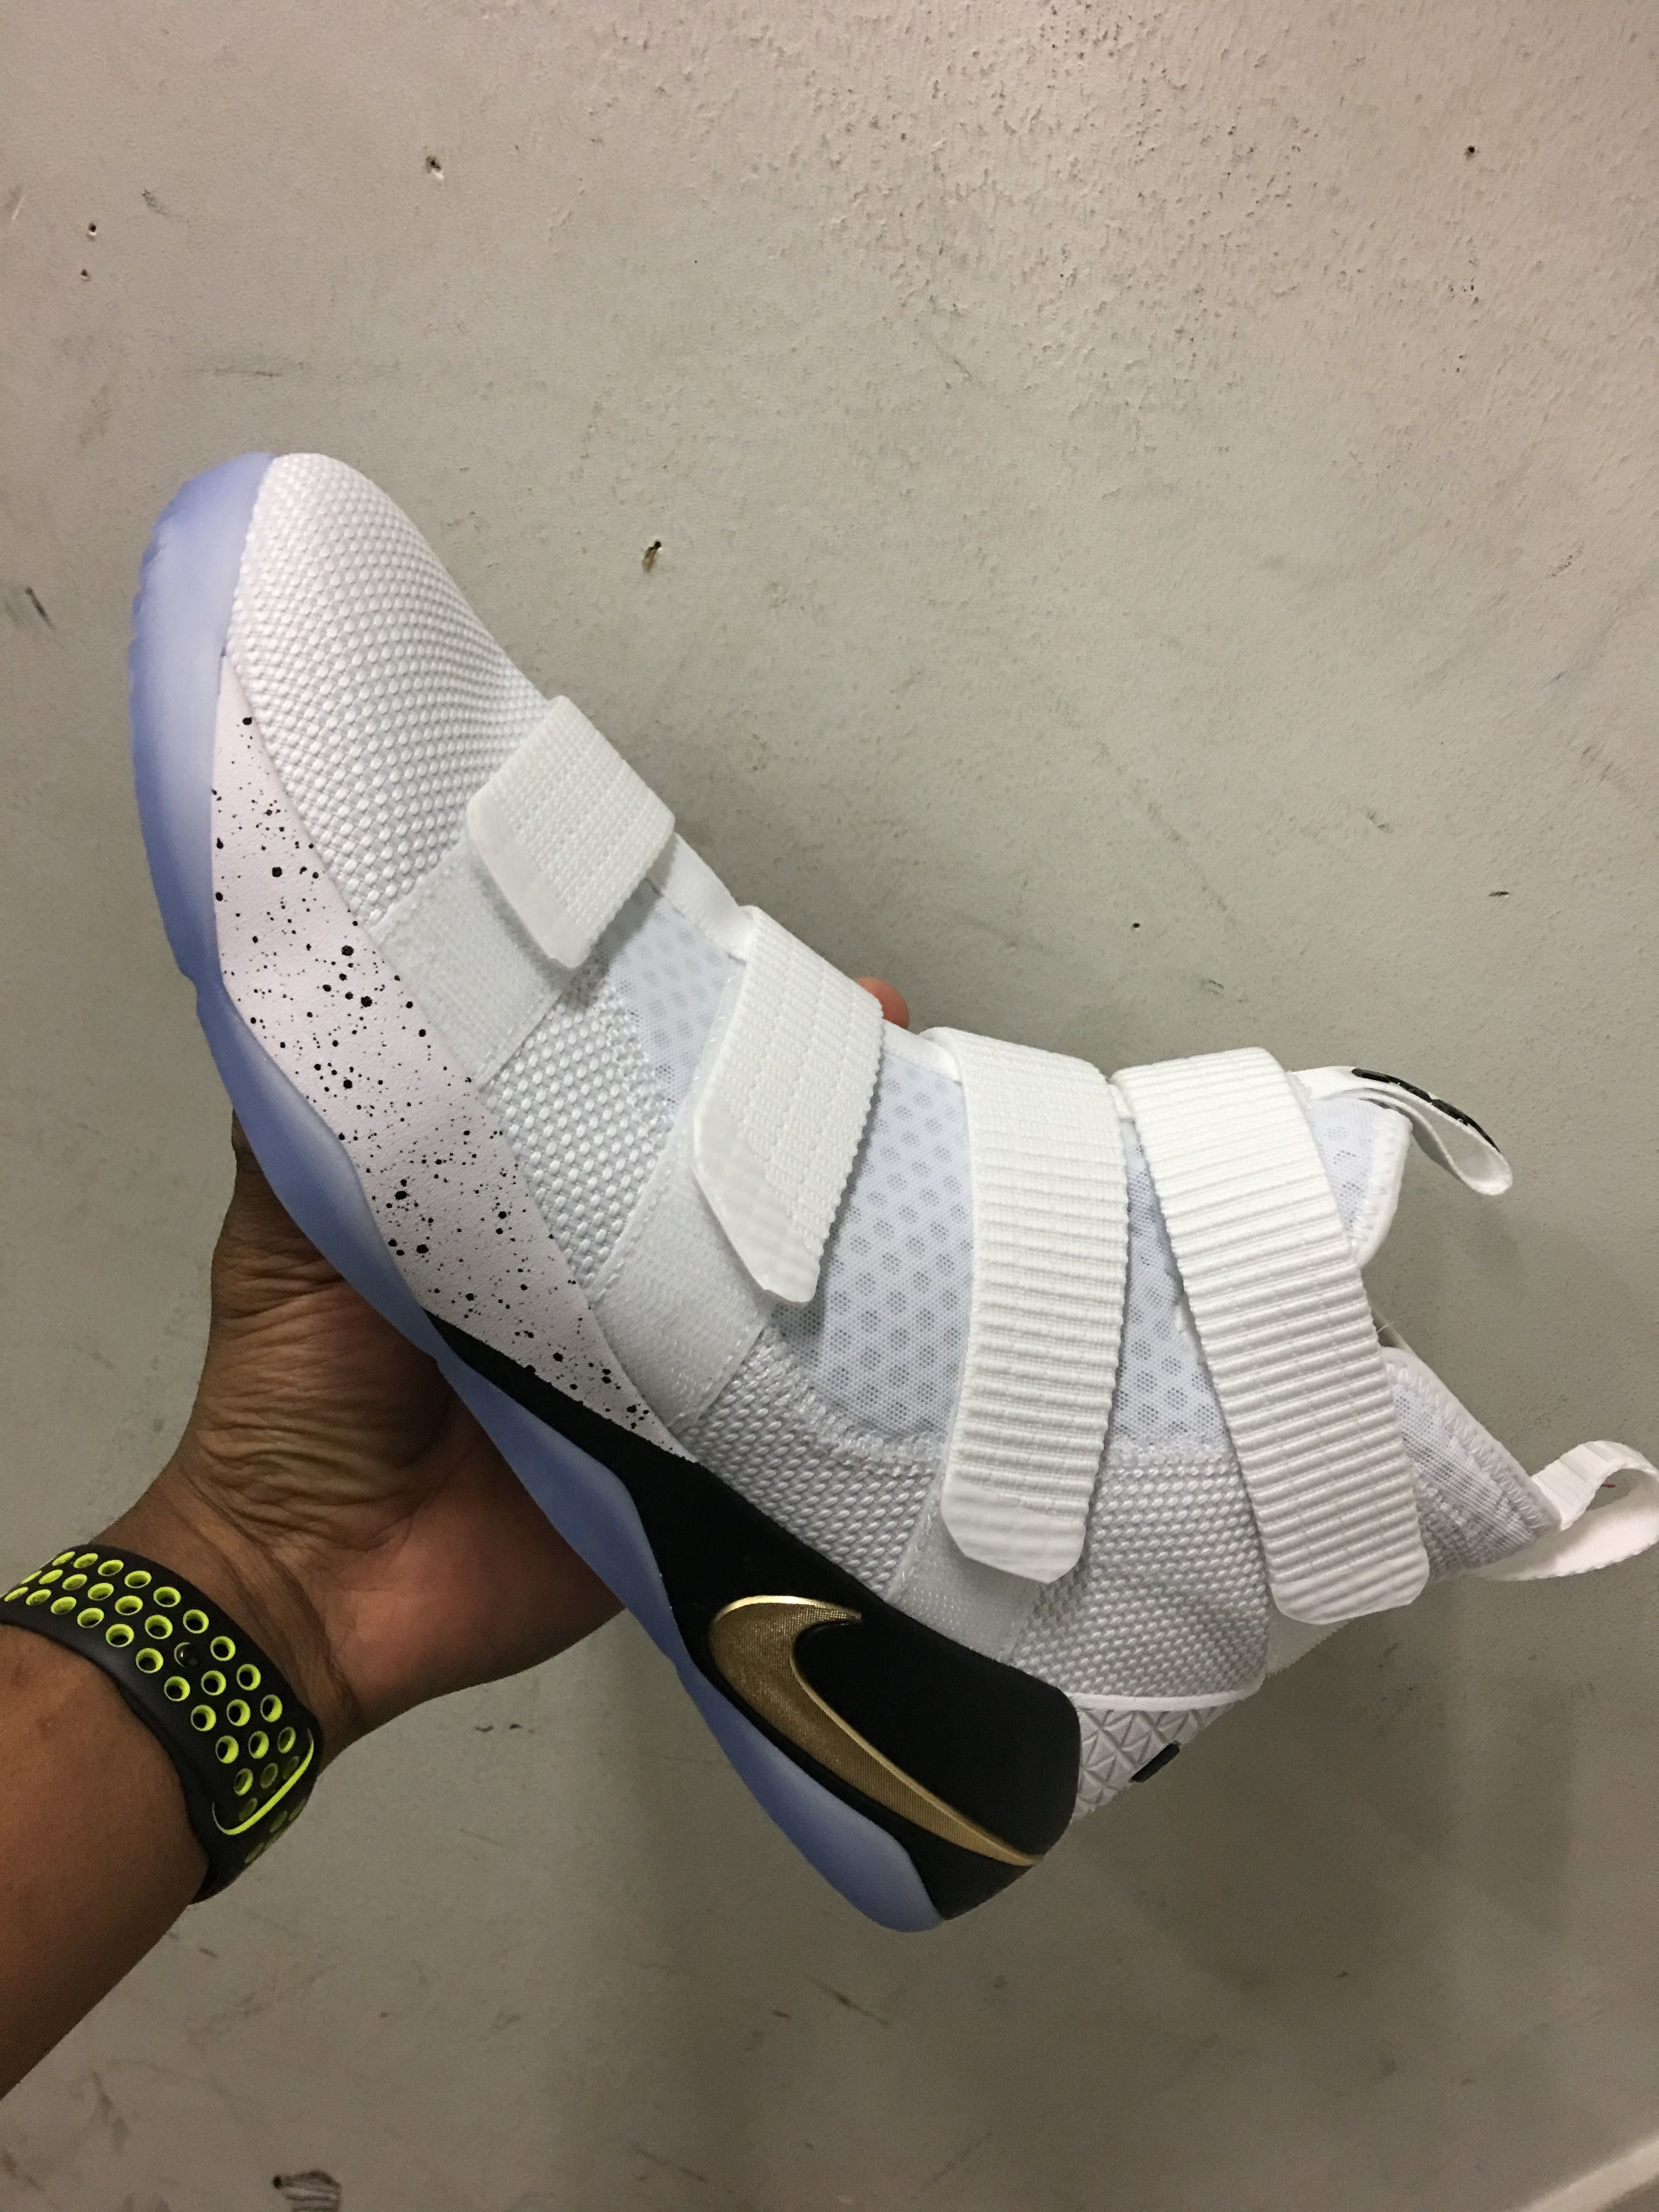 best service 8857e 5e922 The Nike LeBron Soldier 11 Releases This Month - WearTesters